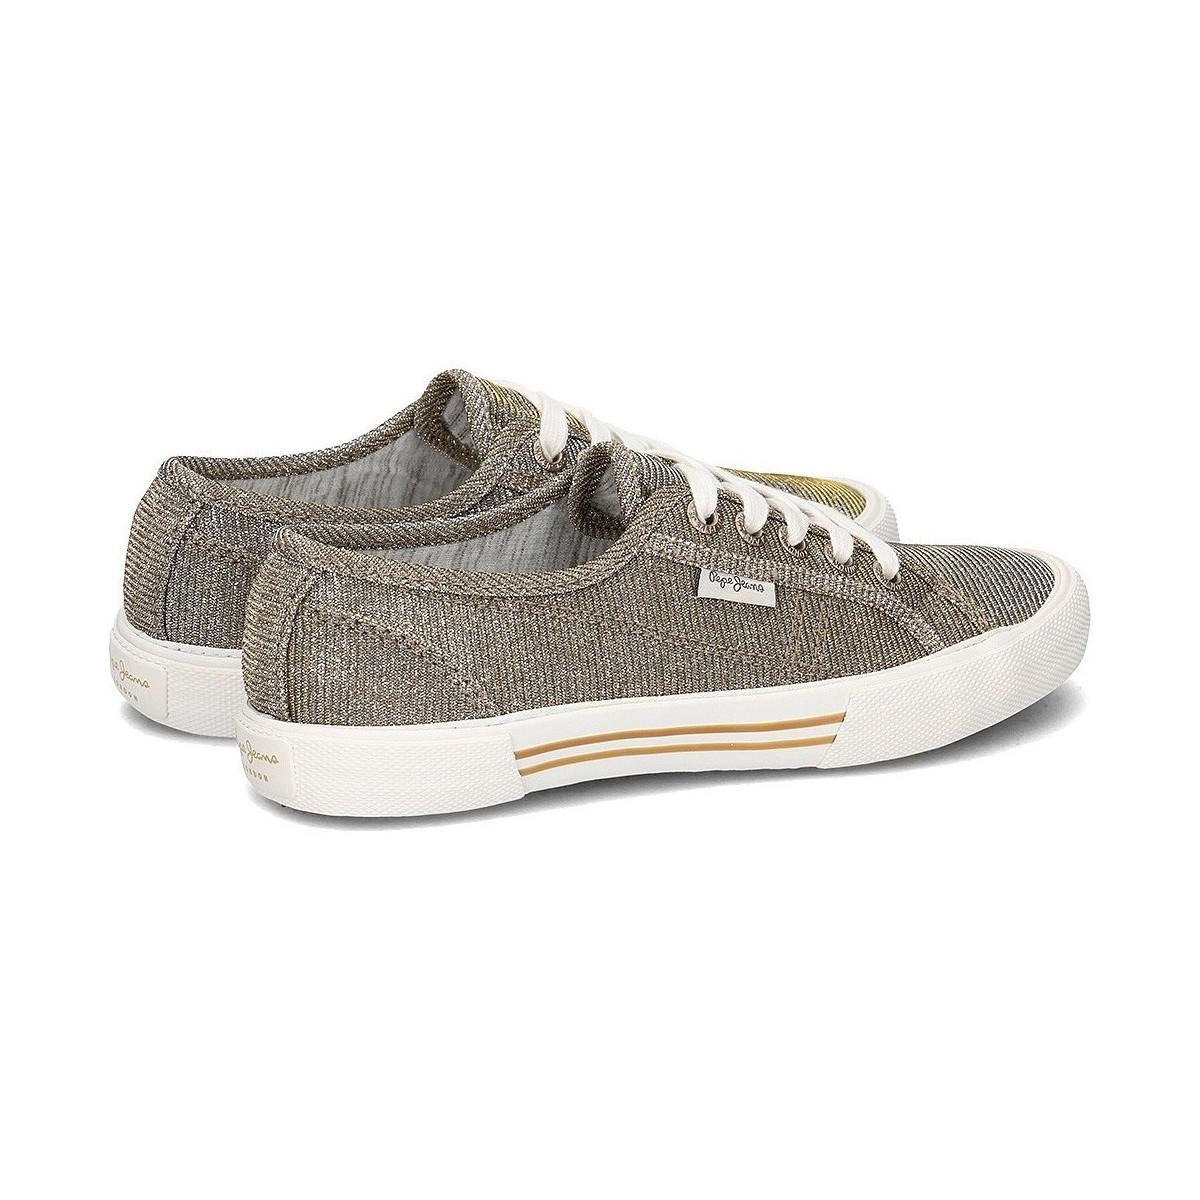 Pepe Jeans Denim Aberlady Nuit Women's Shoes (trainers) In Gold in Metallic